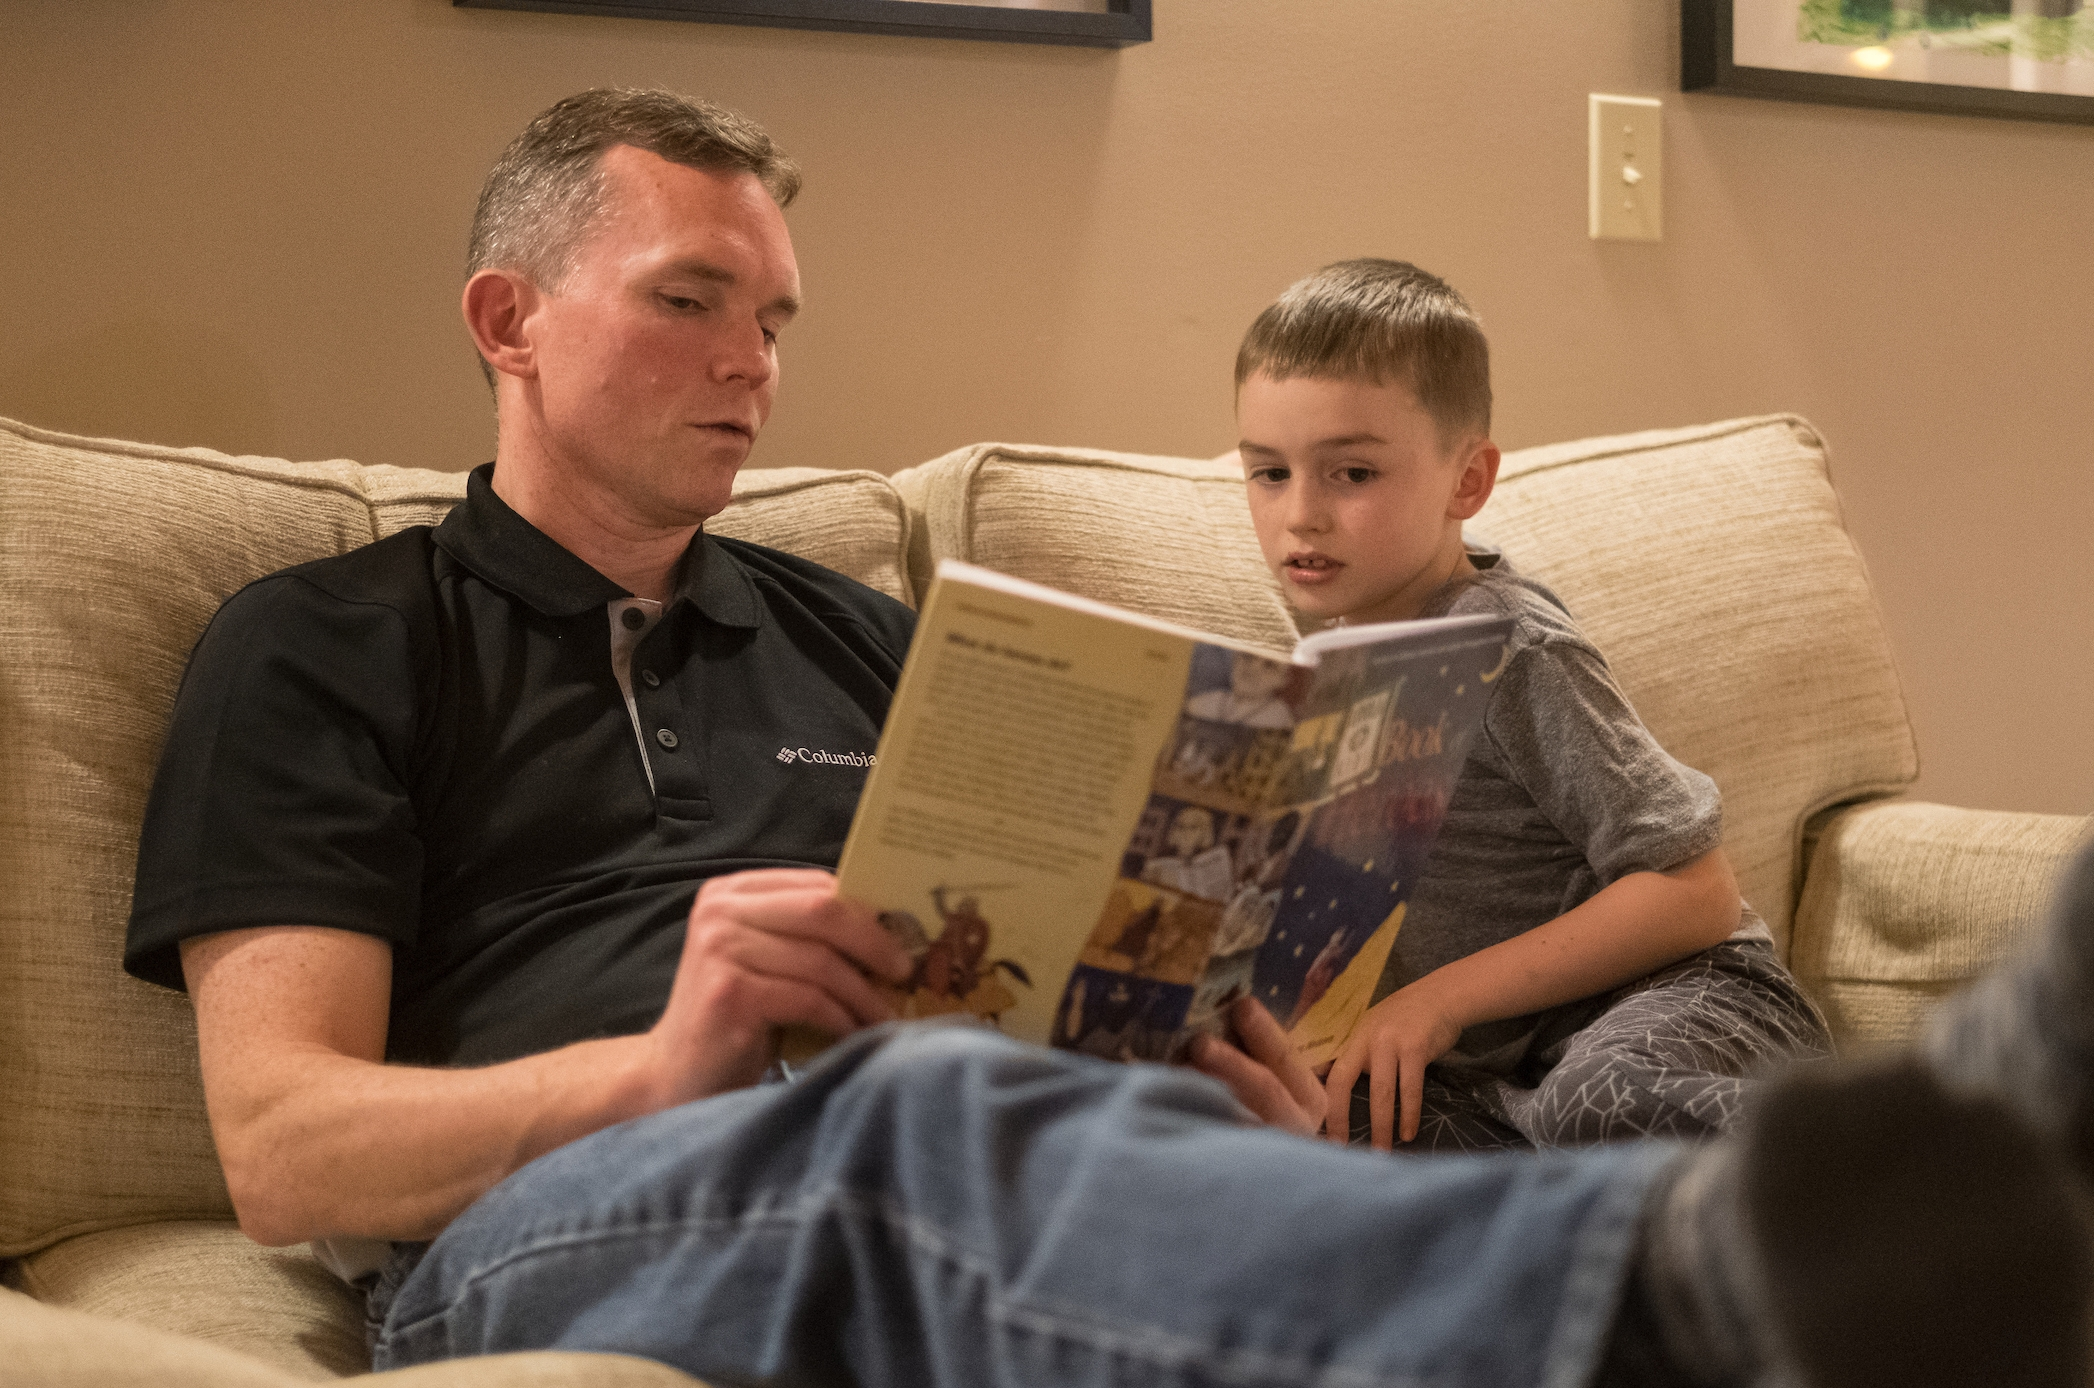 Keith Mack, left, reads from a book about saints to son Patrick before bedtime at their home on Saturday January 21, 2017 in Oak Harbor, Washington. (PHOTO by Stephen Brashear) Domestic Church, father, son, reading, book.